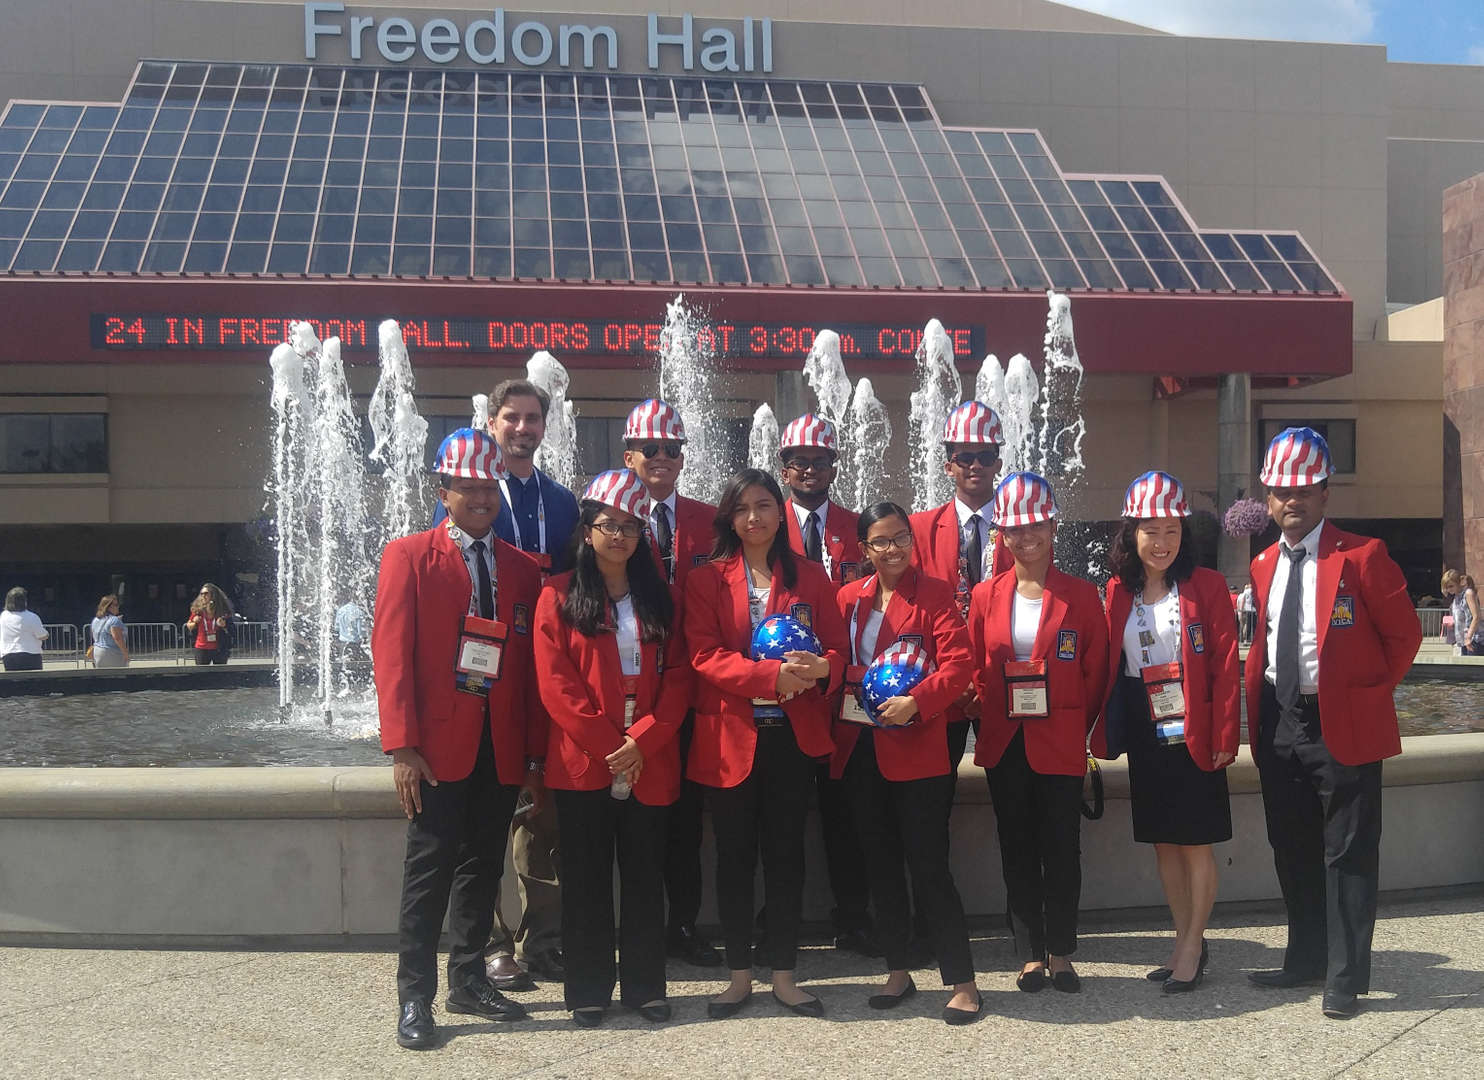 Eight students, two teachers and the principal standing in front of the water fountain at Freedom Hall at the Convention Center in Louisville, Kentucky.